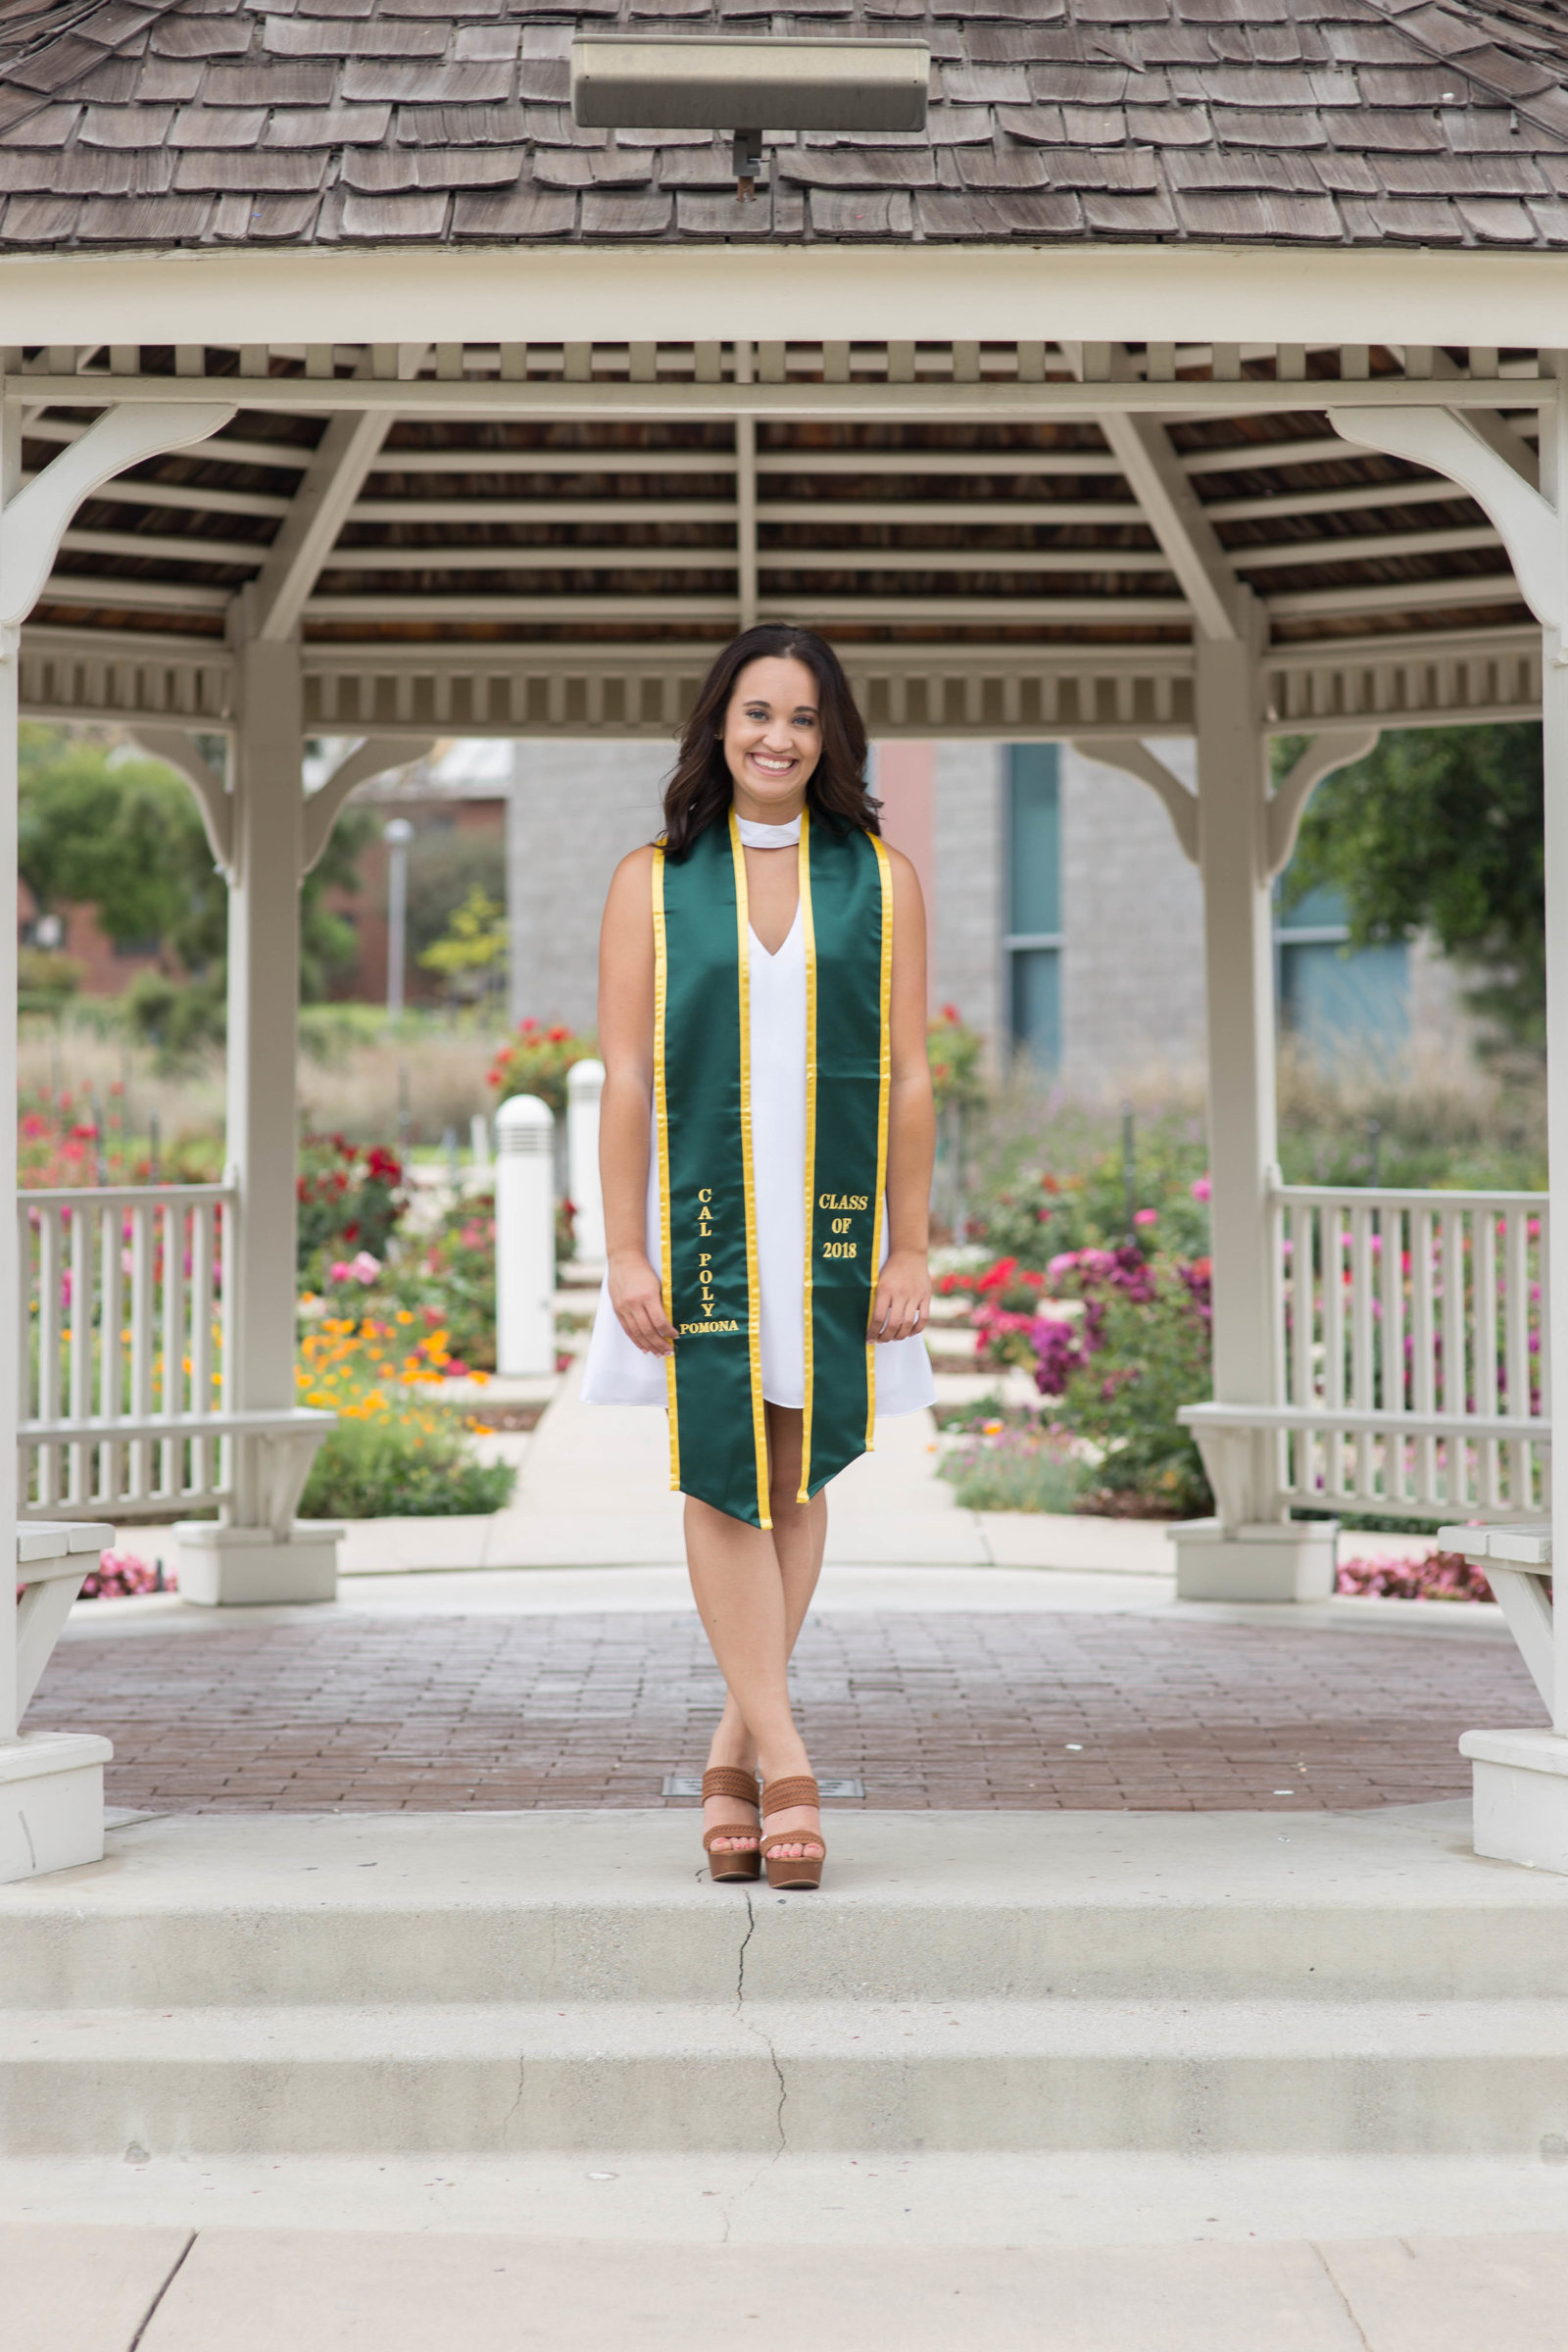 Pomona-graduation-cal-poly-photos-by-kelly-h-photo